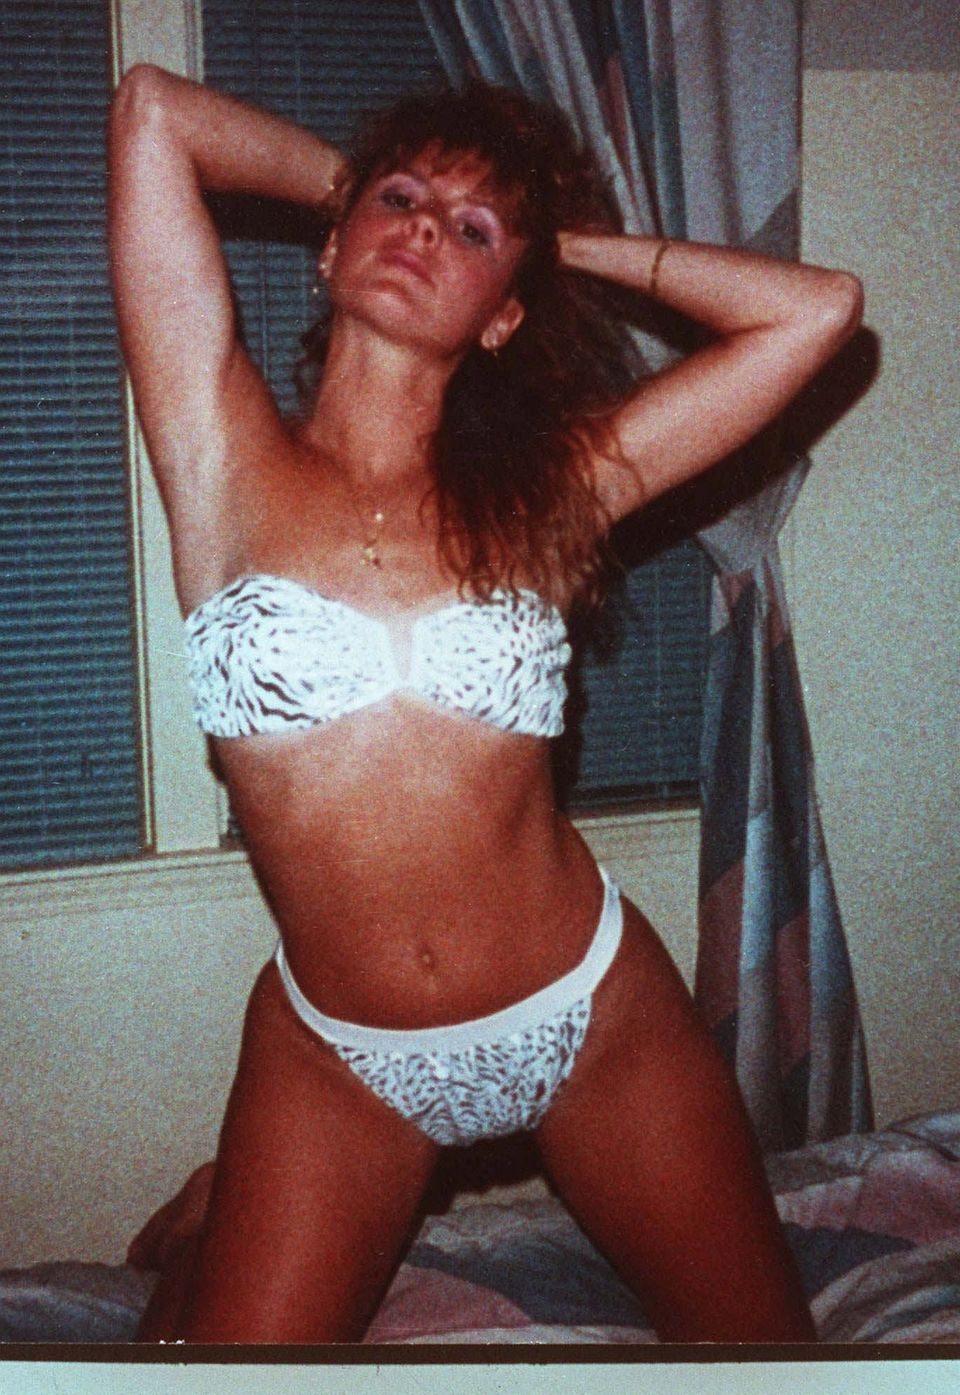 This photo of Pamela Smart was used as evidence in her murder conspiracy trial that ended in her being found guilty and sente